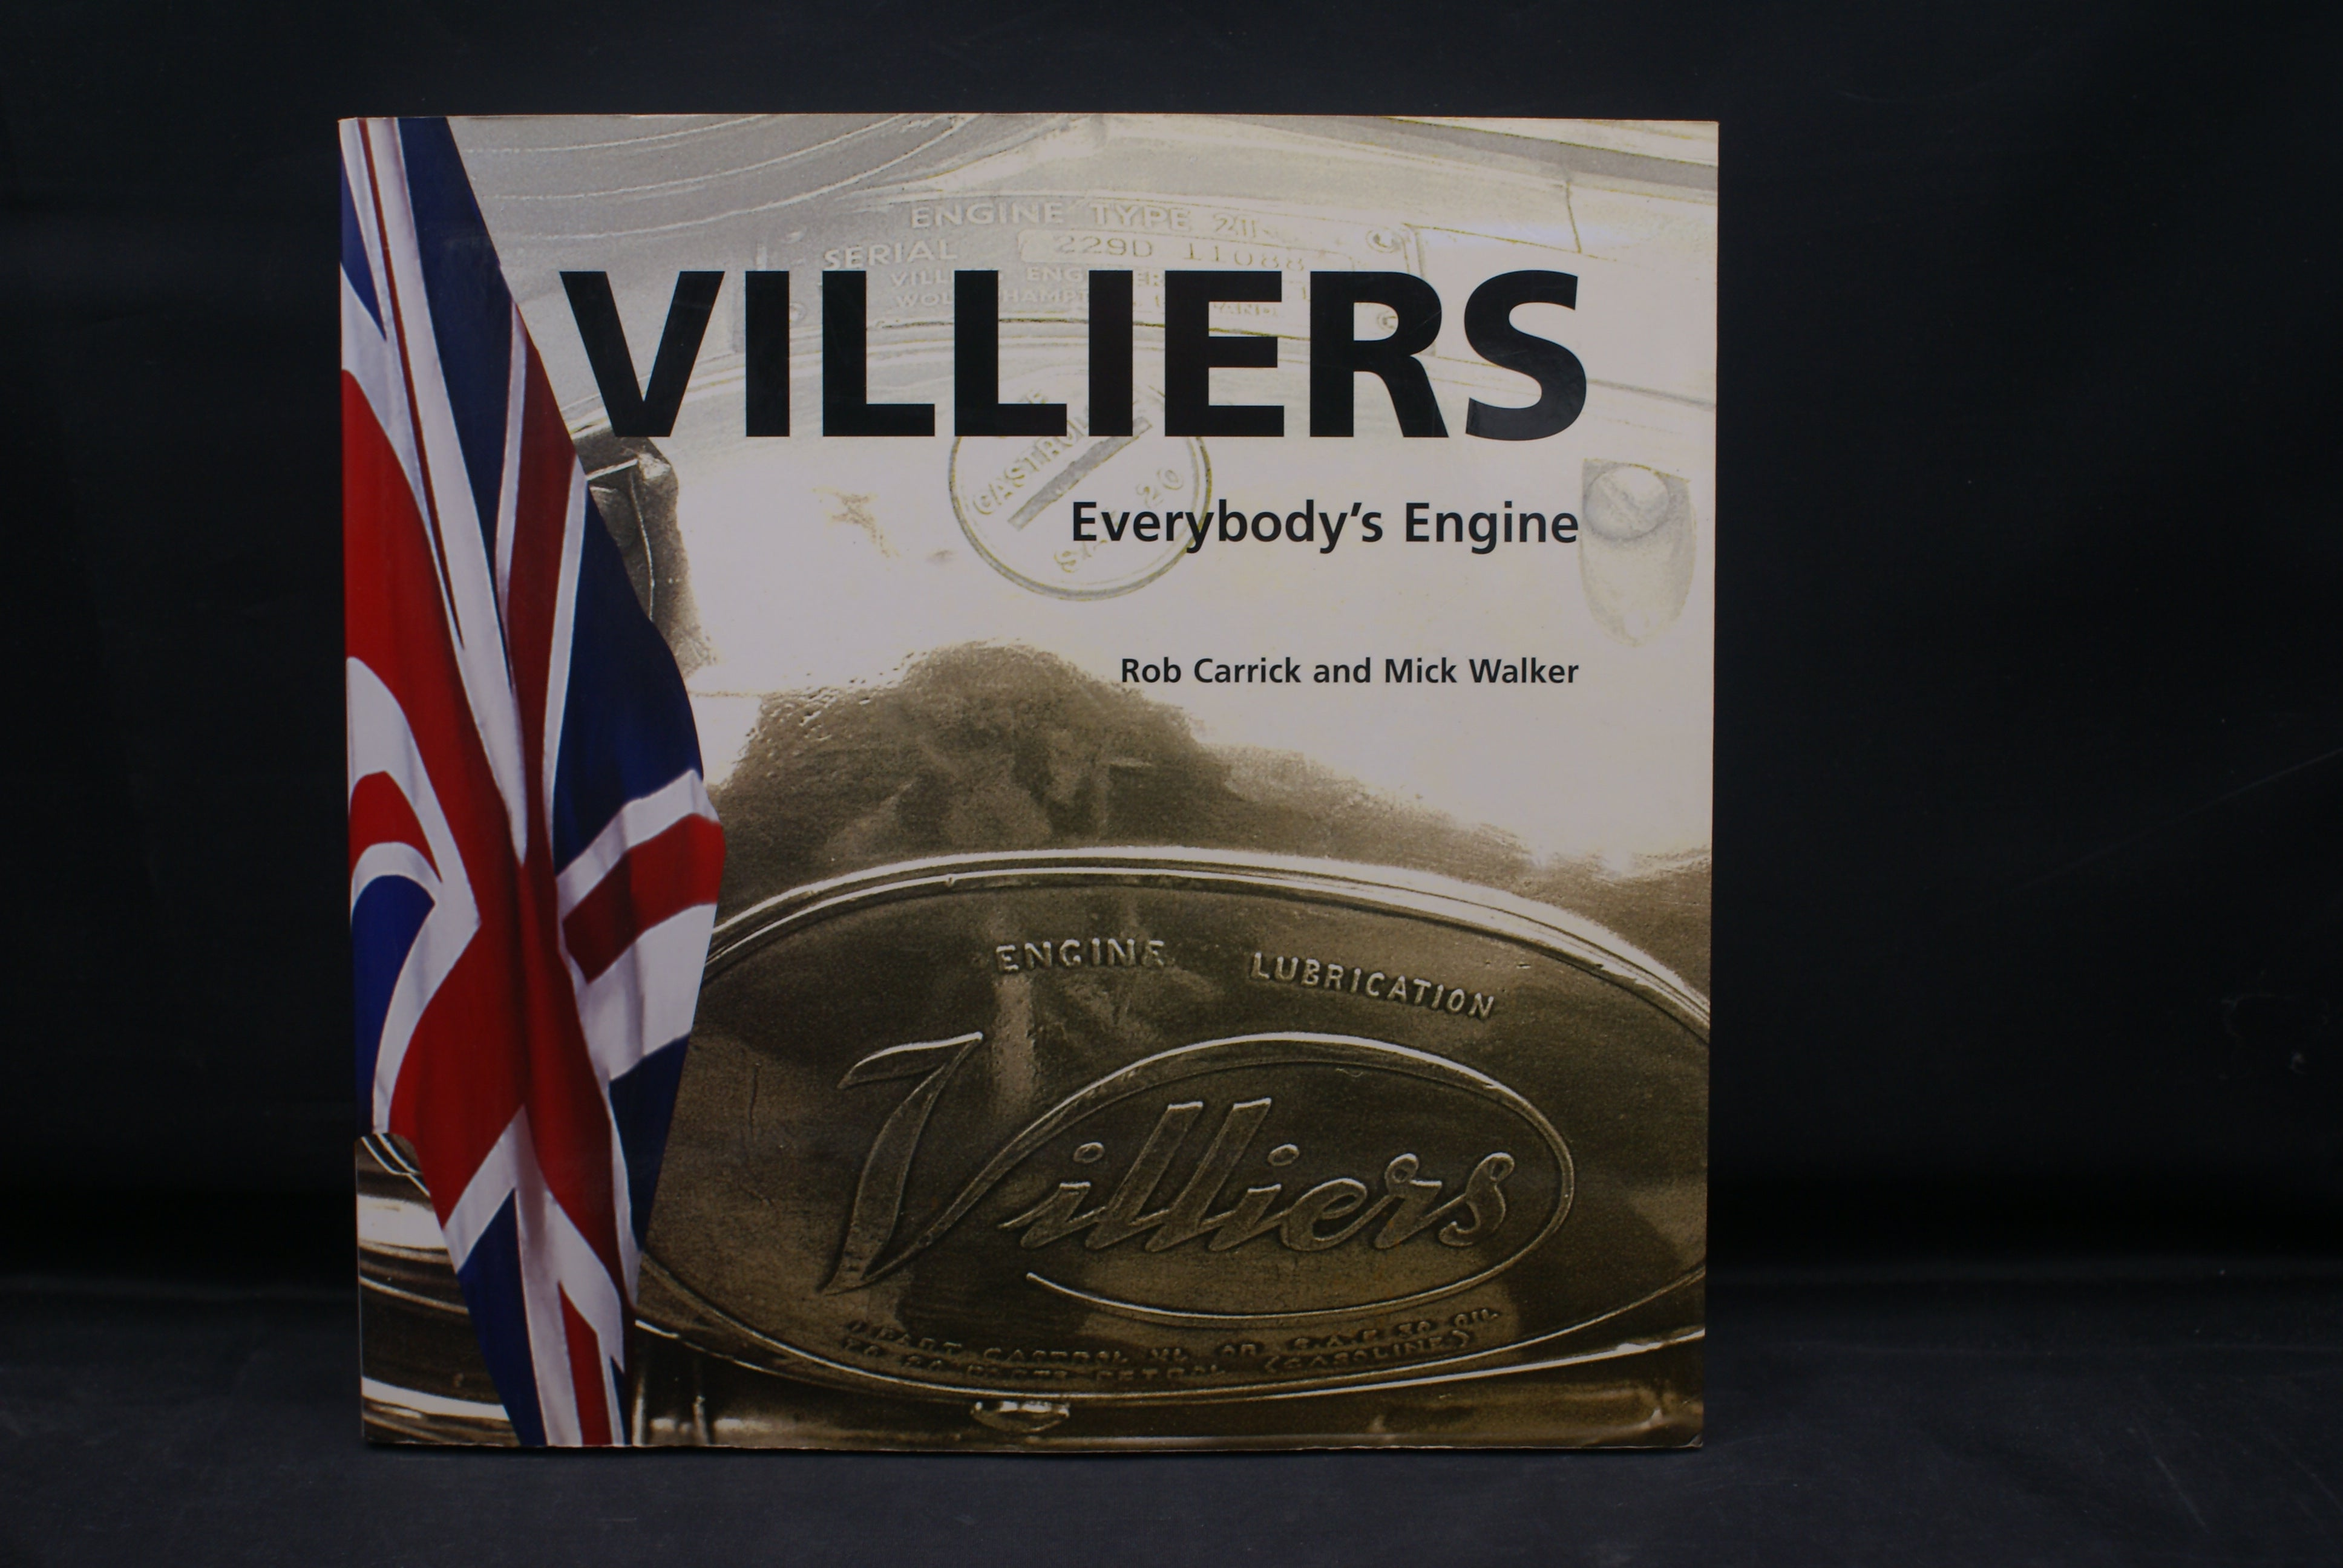 Villiers, Everybody's Engine